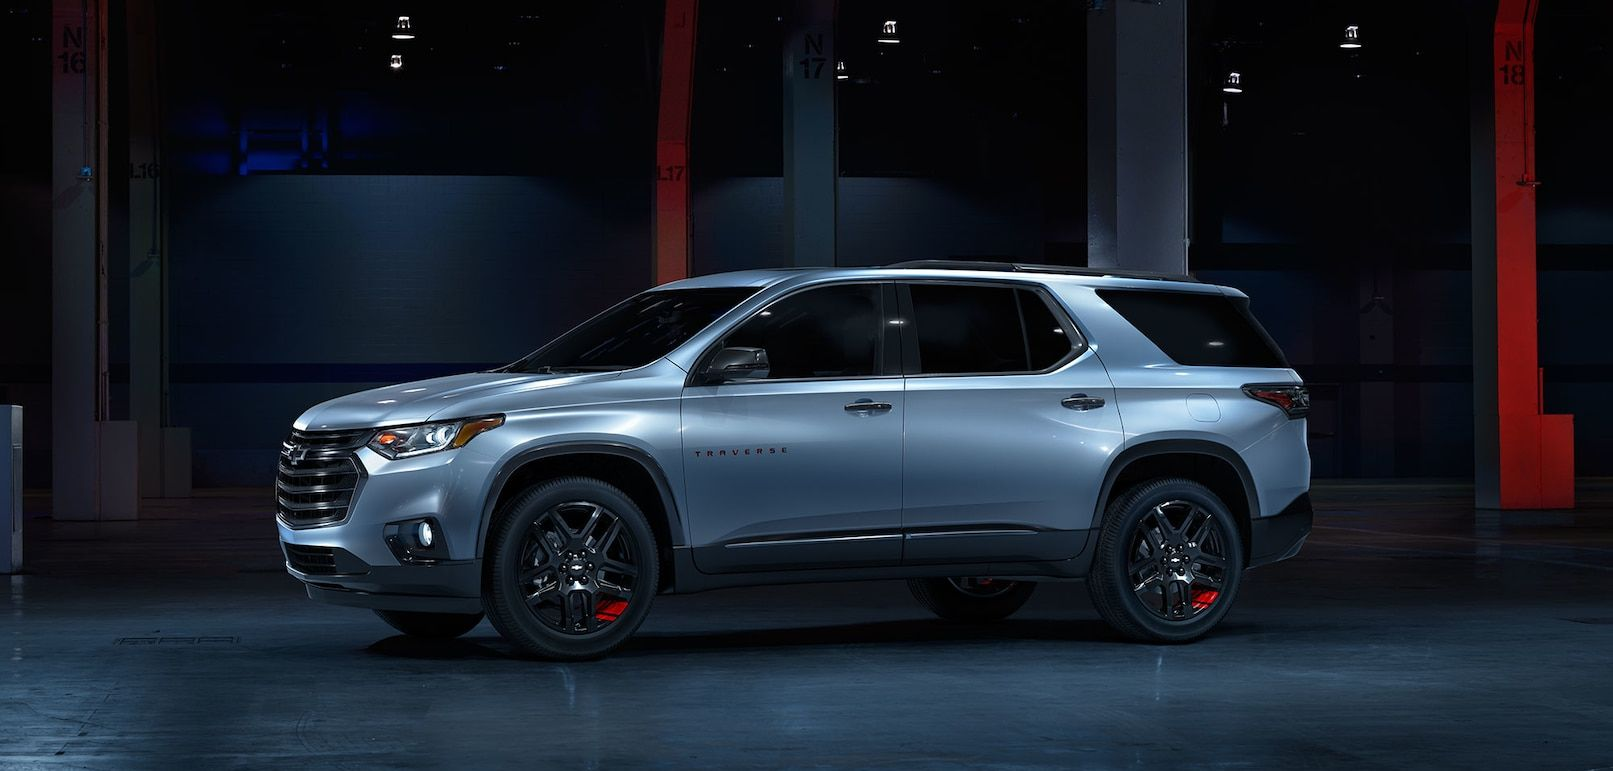 2018 Chevrolet Traverse Redline For Sale In Youngstown Oh Sweeney Fuel Filter